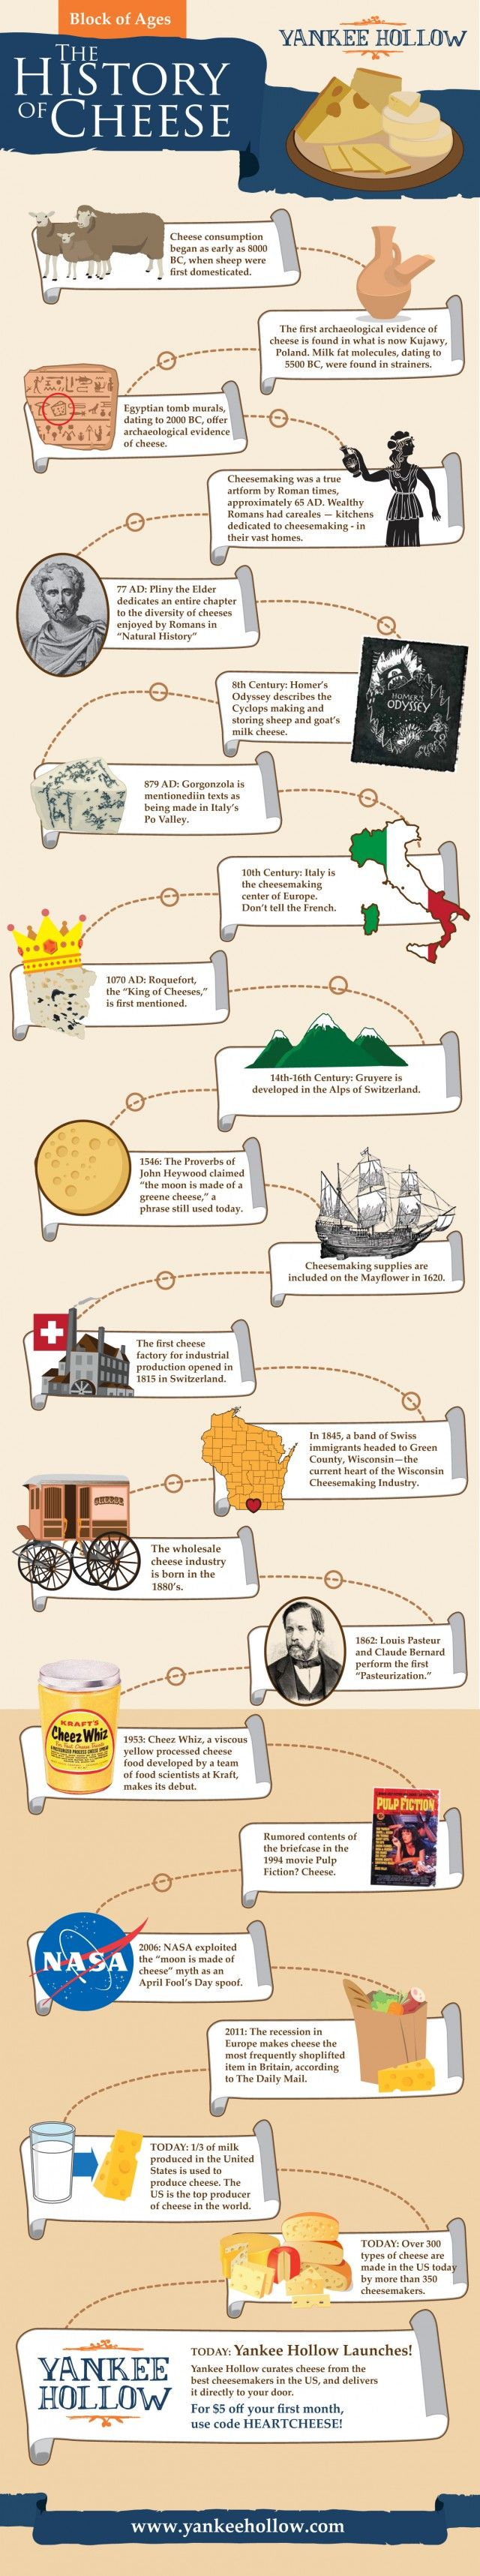 The History of Cheese #infographic #Infografía www.avacationrental4me.com  #cheese